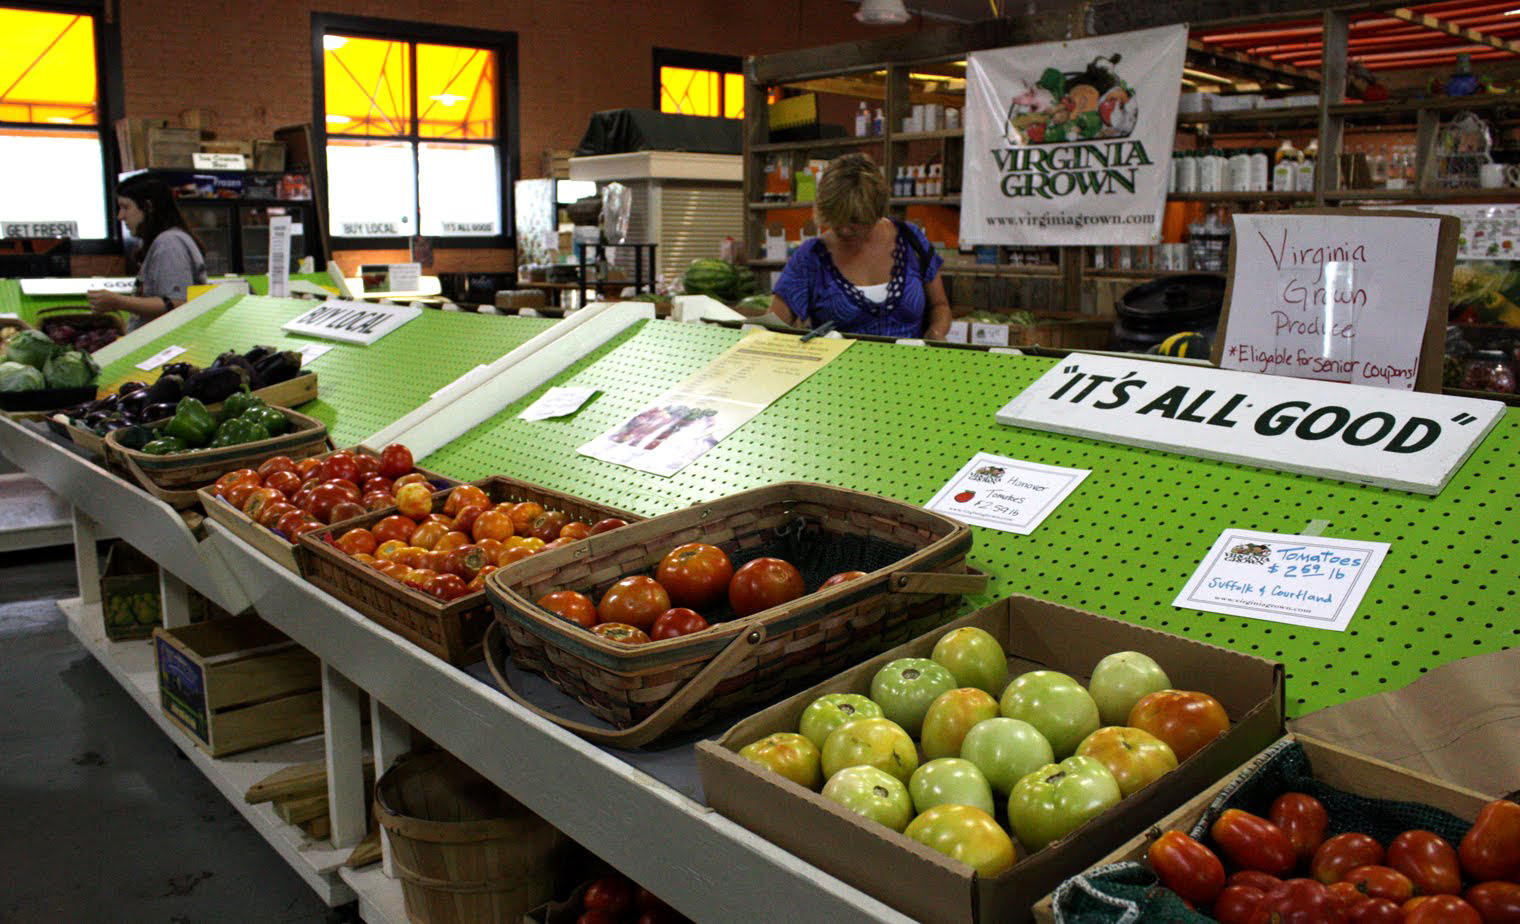 The Five Points Market is one of Norfolk's original farmers markets. A community run non-profit, Five Points is always evolving with its offerings of locally grown farm produce and products.